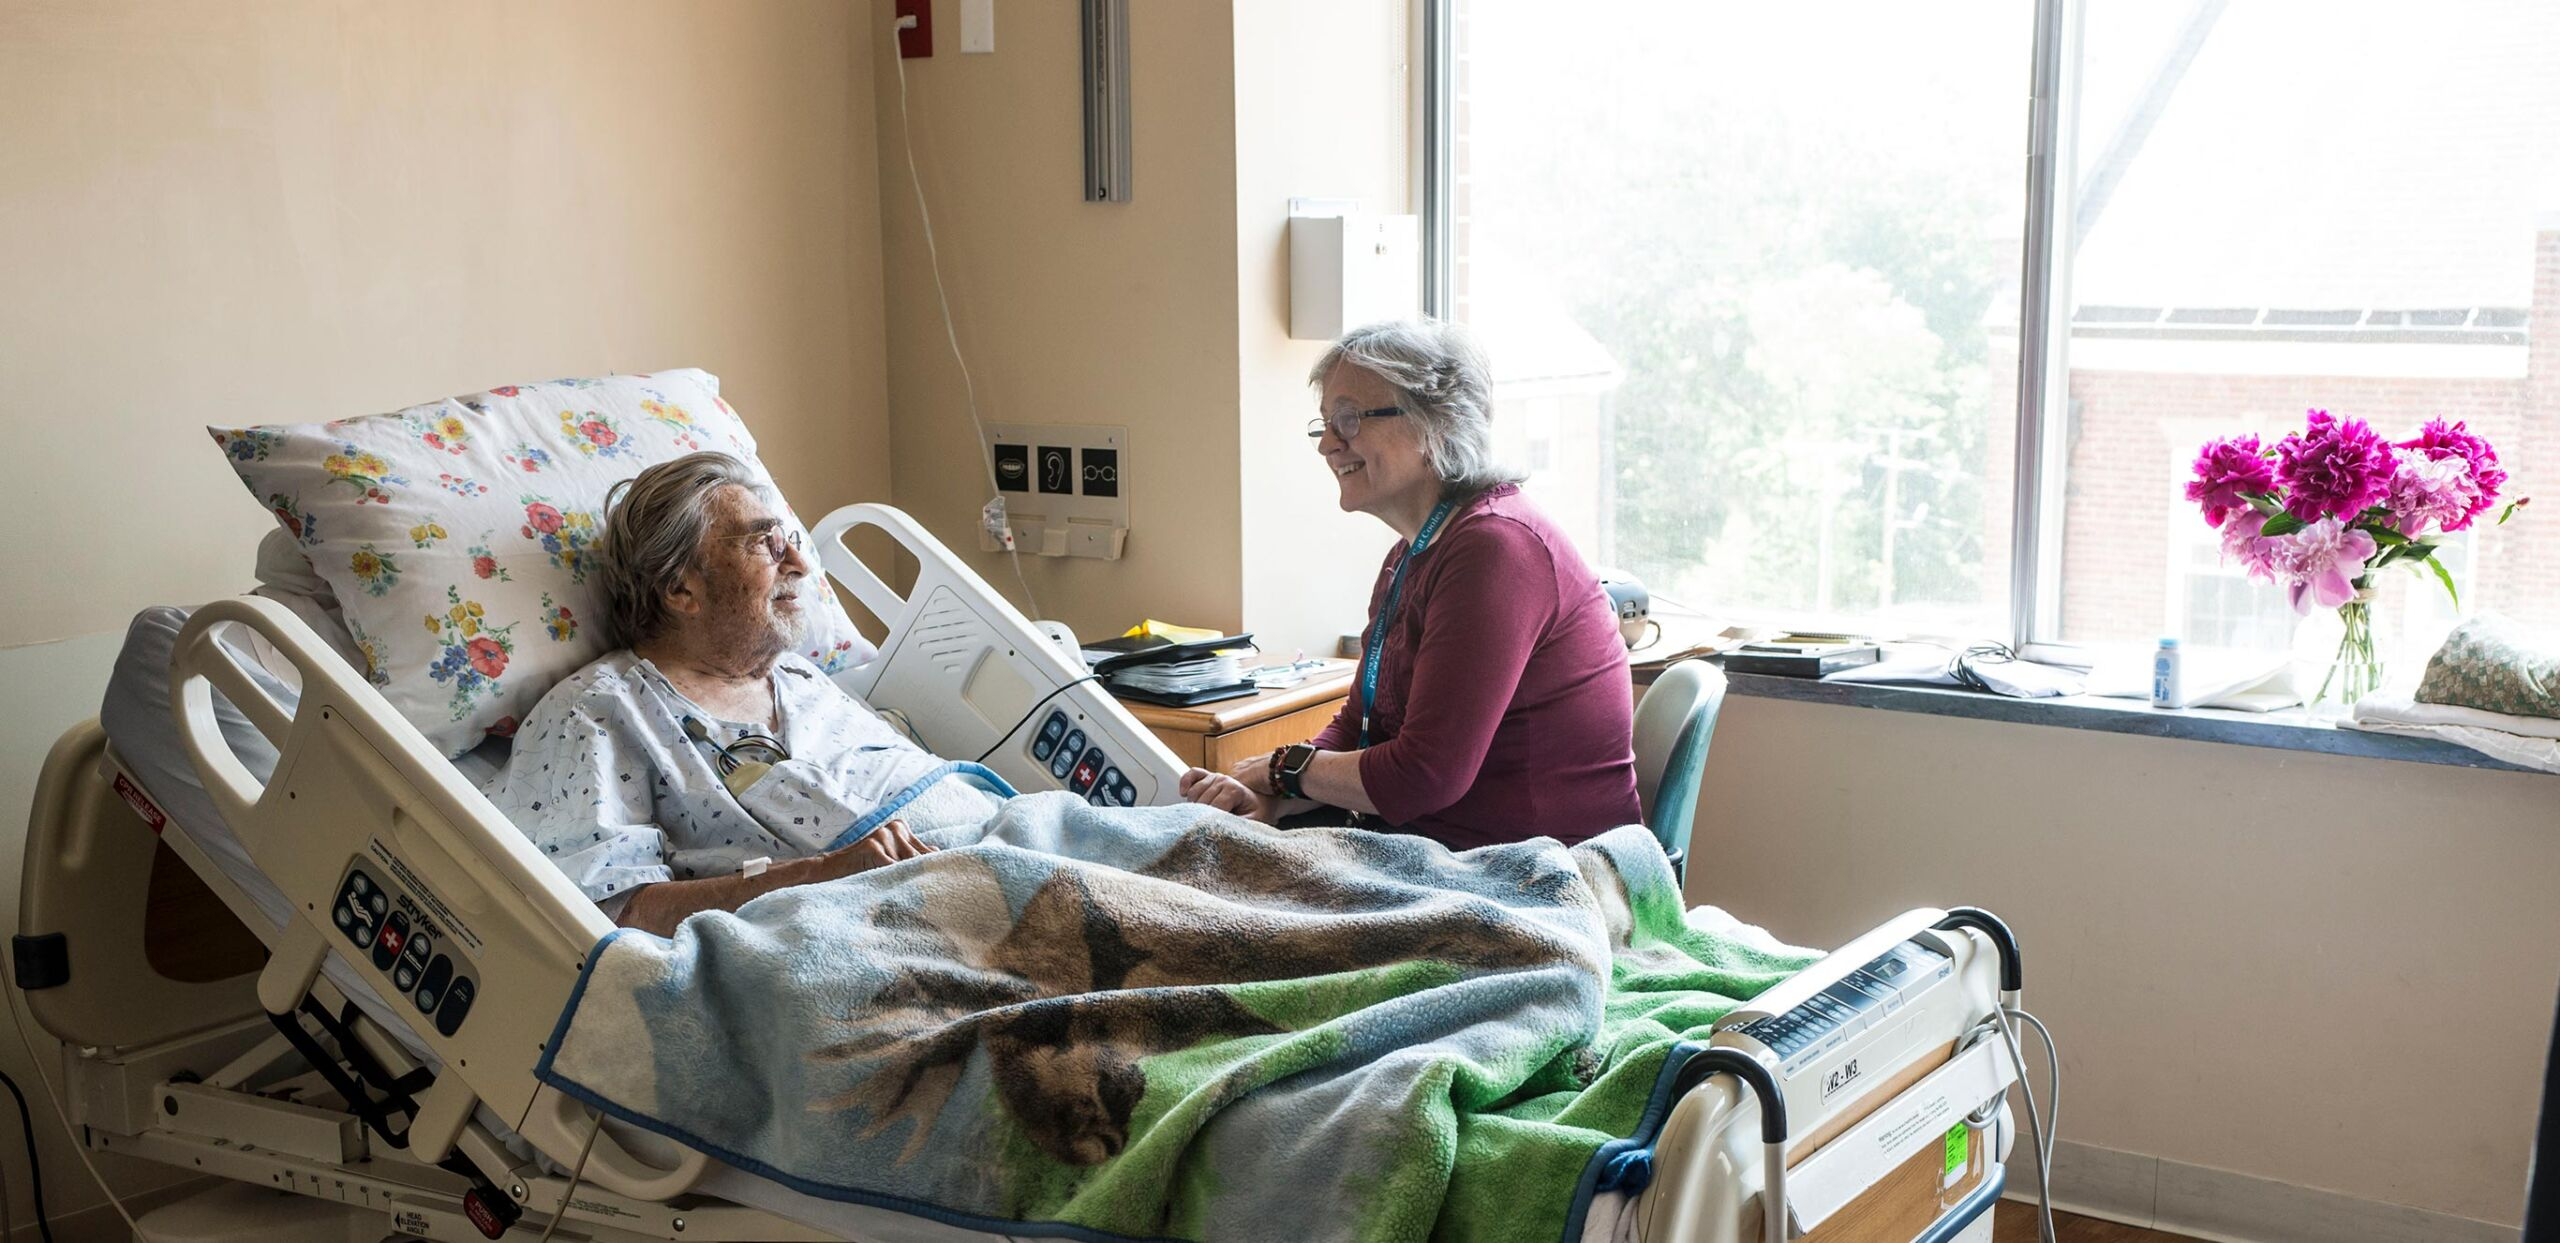 Social worker with patient - Cooley Dickinson Hospital